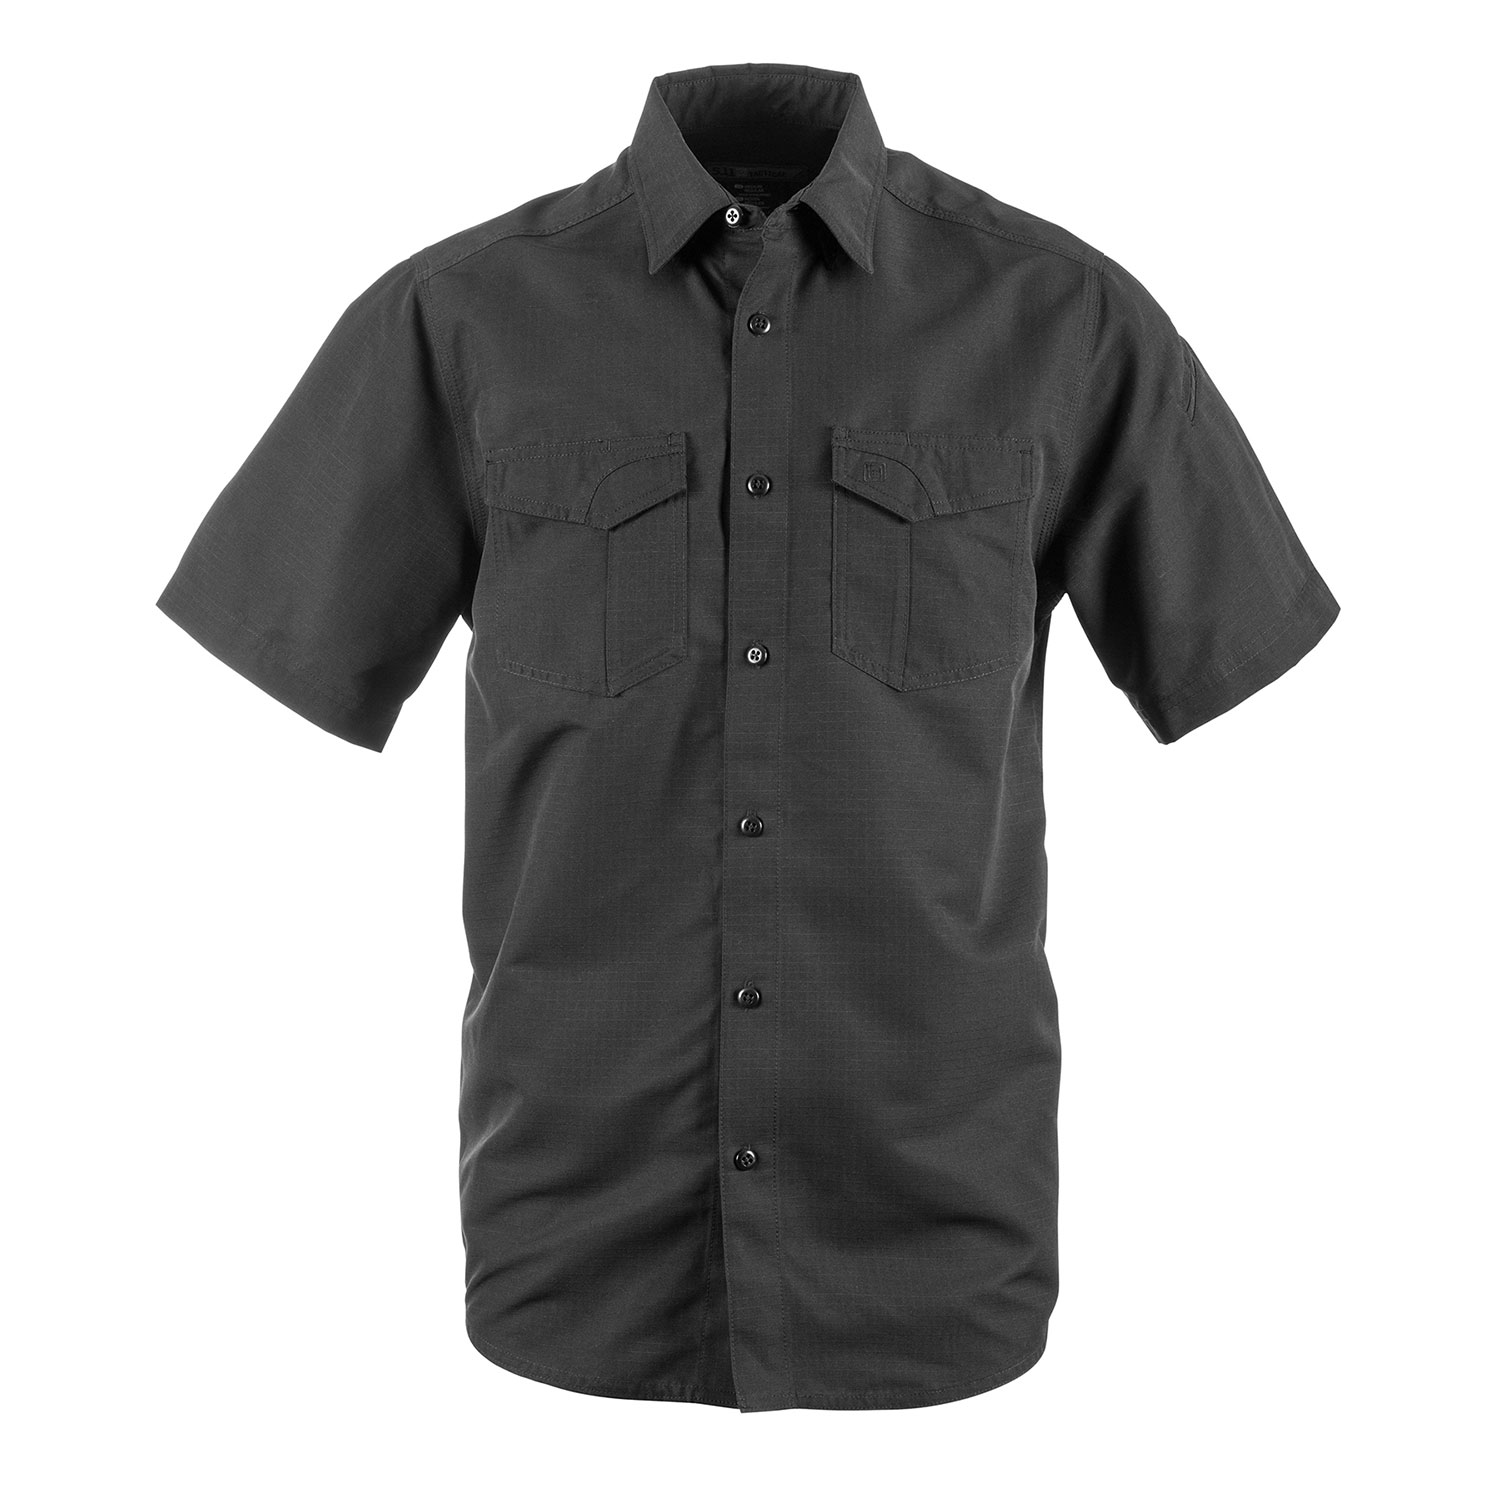 5.11 Women's Fast-Tac Short Sleeve Shirt